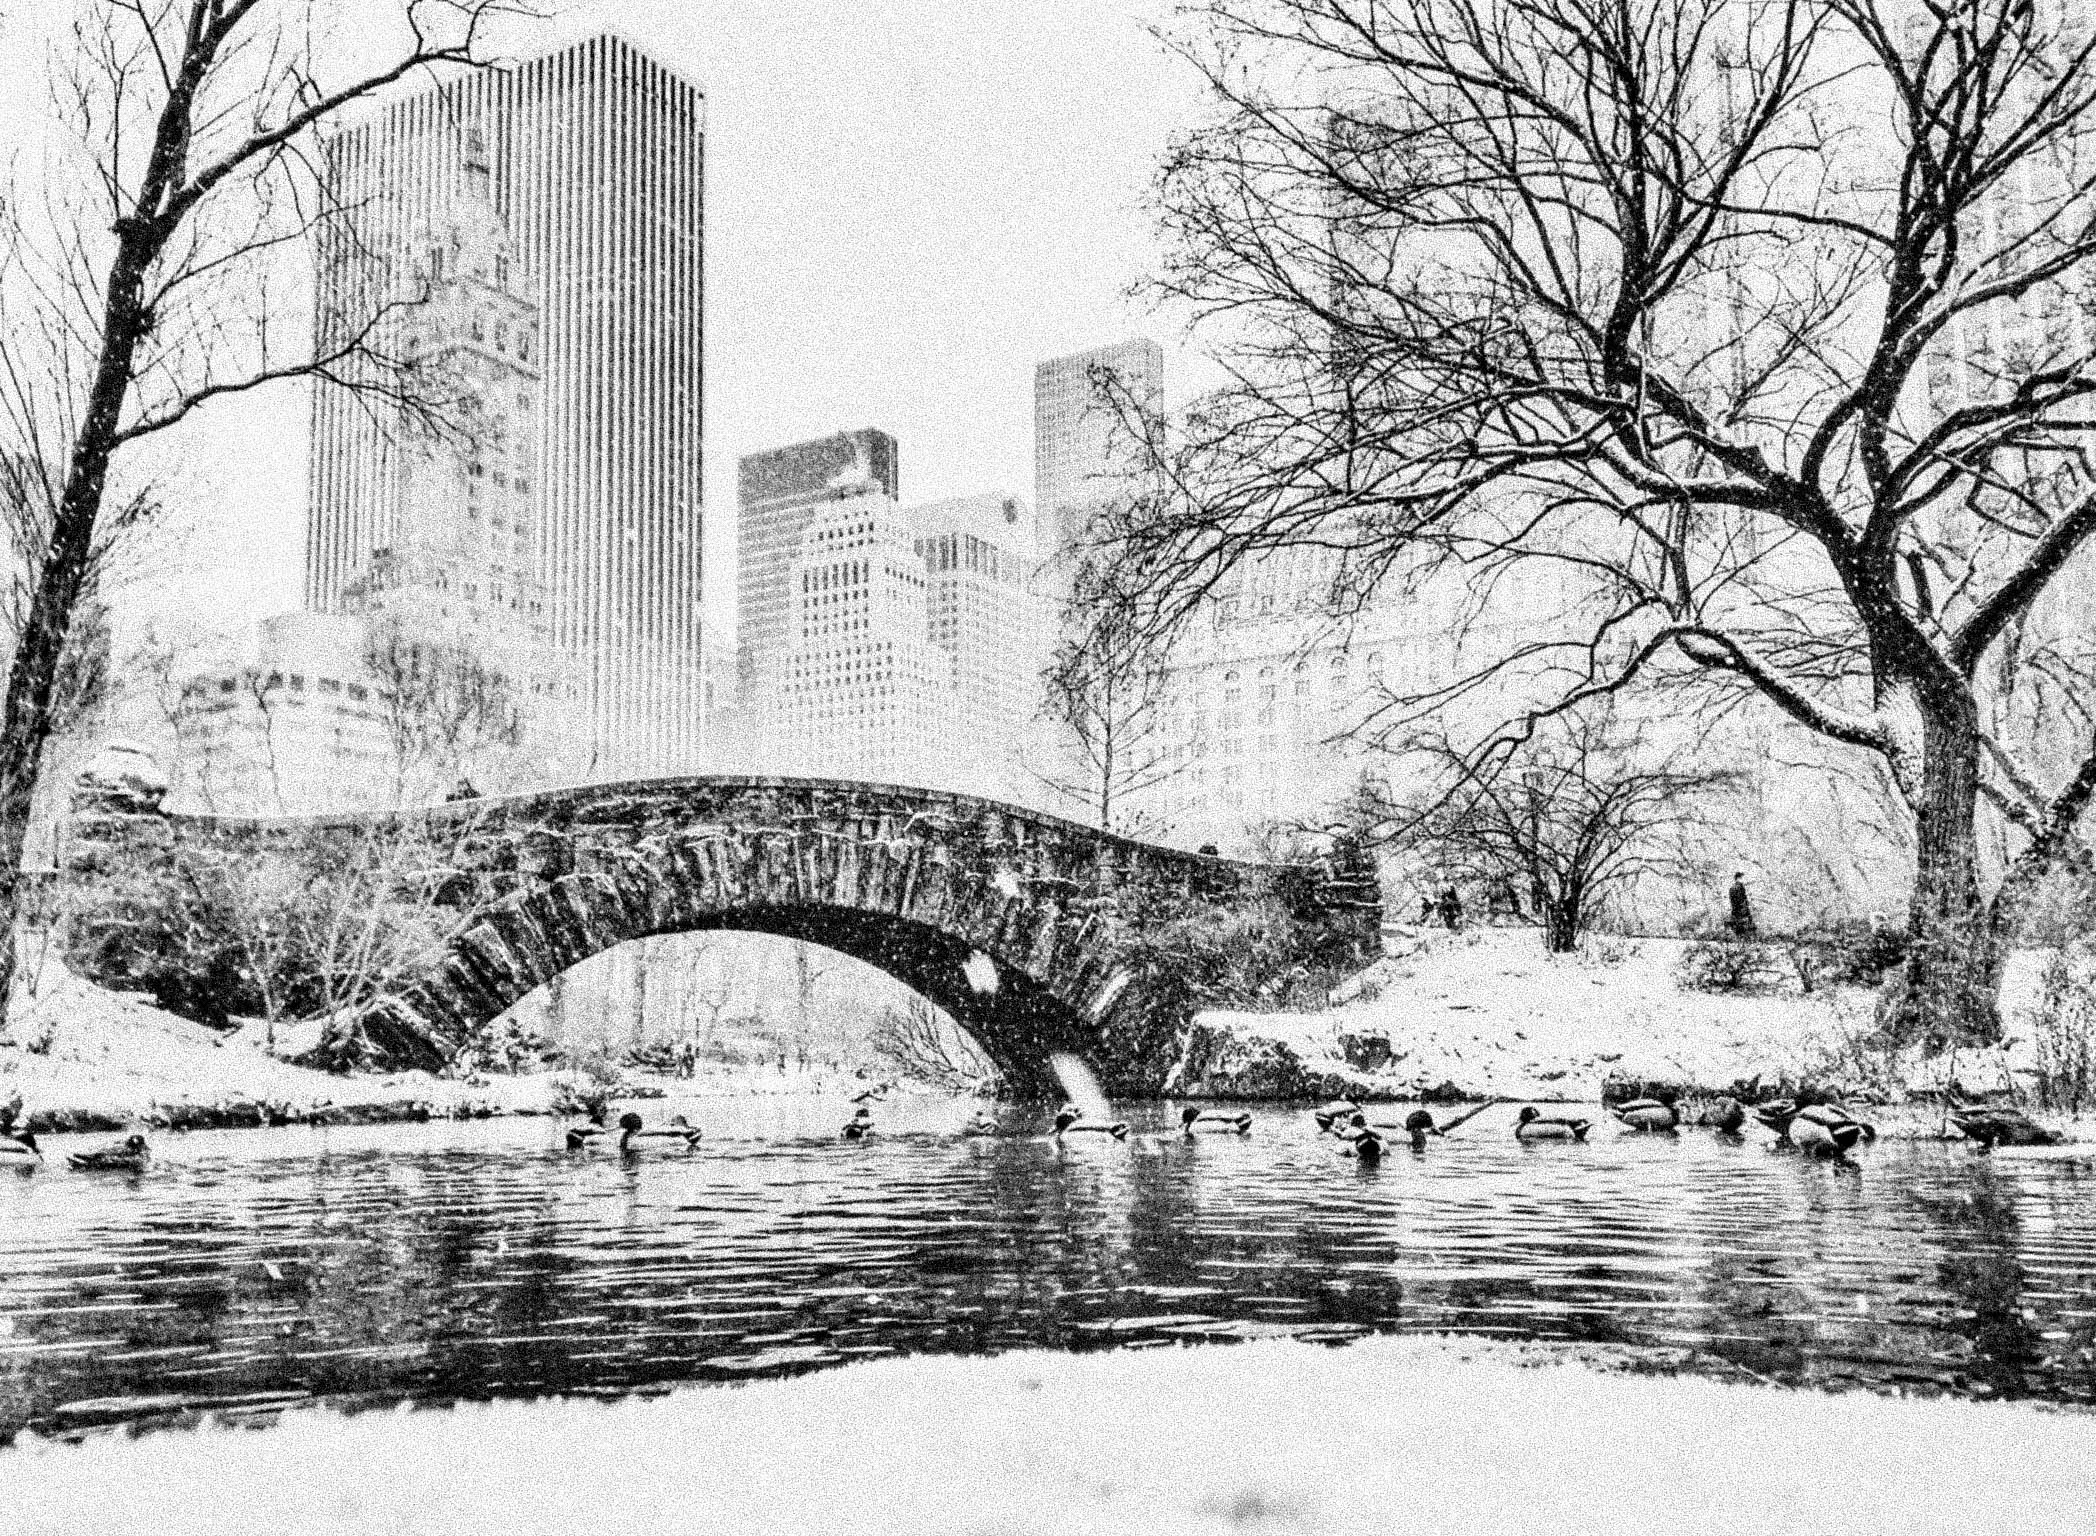 mallard-ducks-floating-on-water-with-cityscape-in-background-in-winter_t20_zrPGVX-46